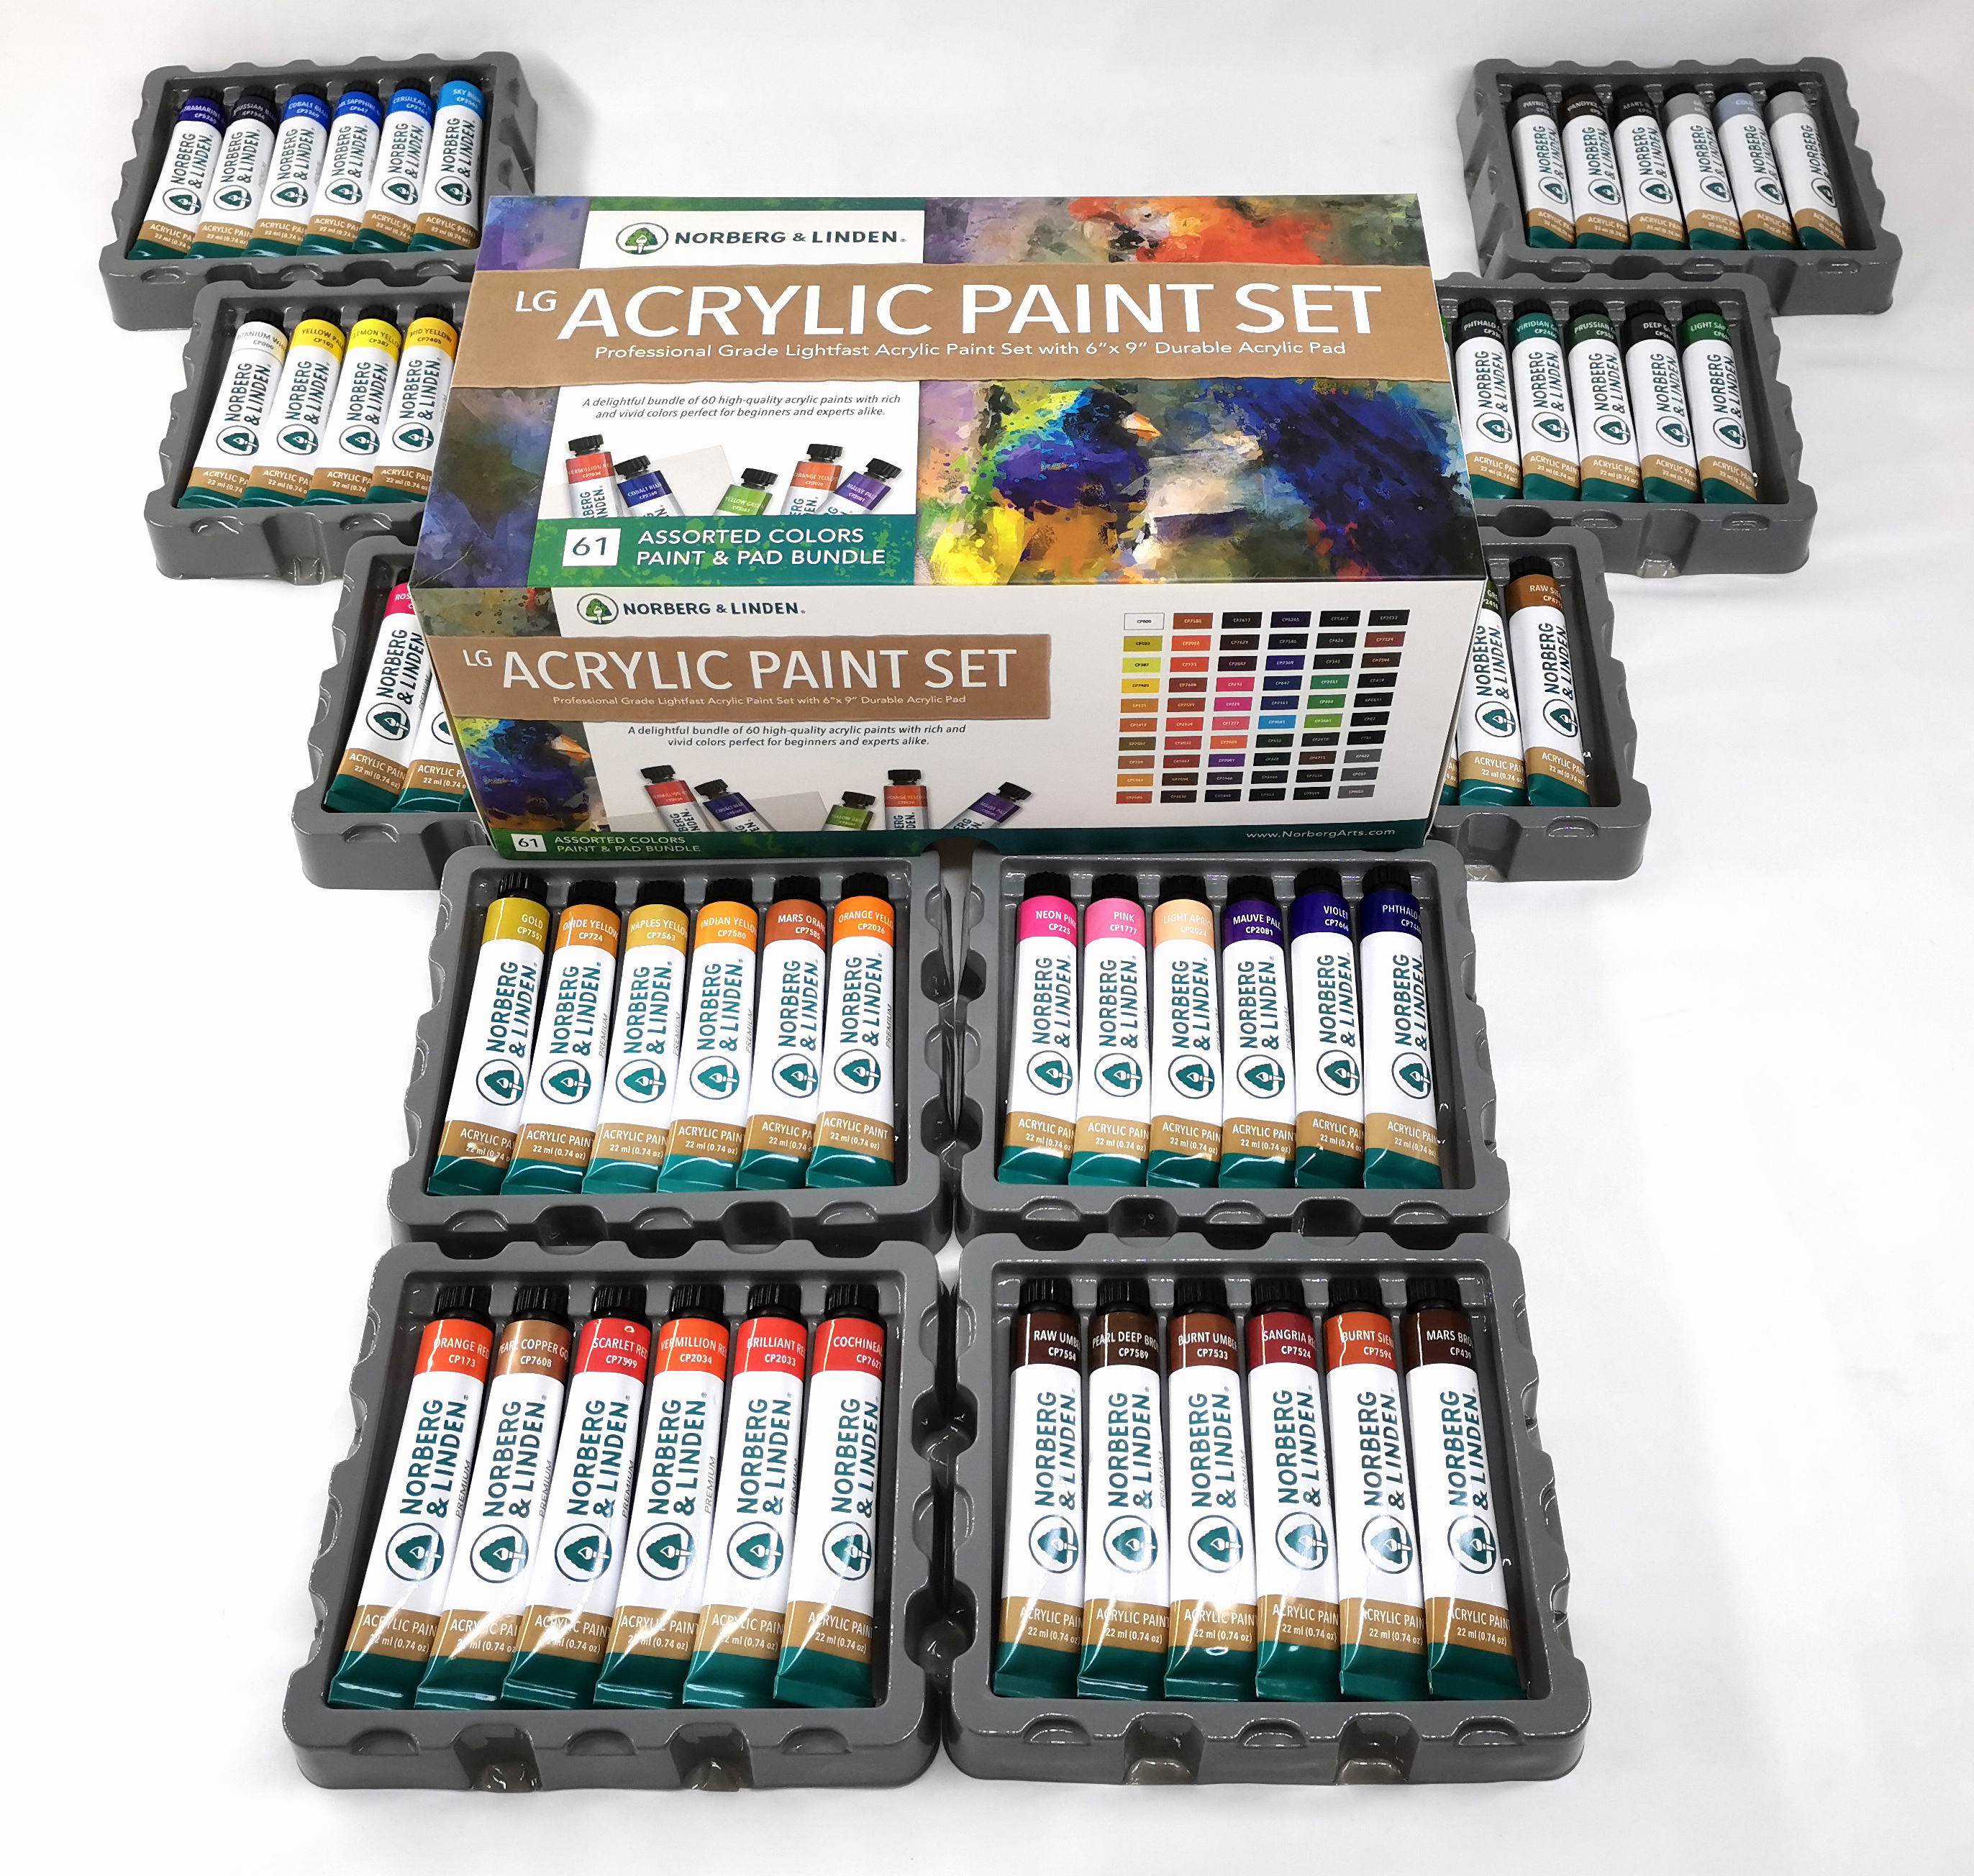 Non-Toxic Artist Paint Set 60 Colors Acrylic Set In Car Box Add A Acrylic Pad